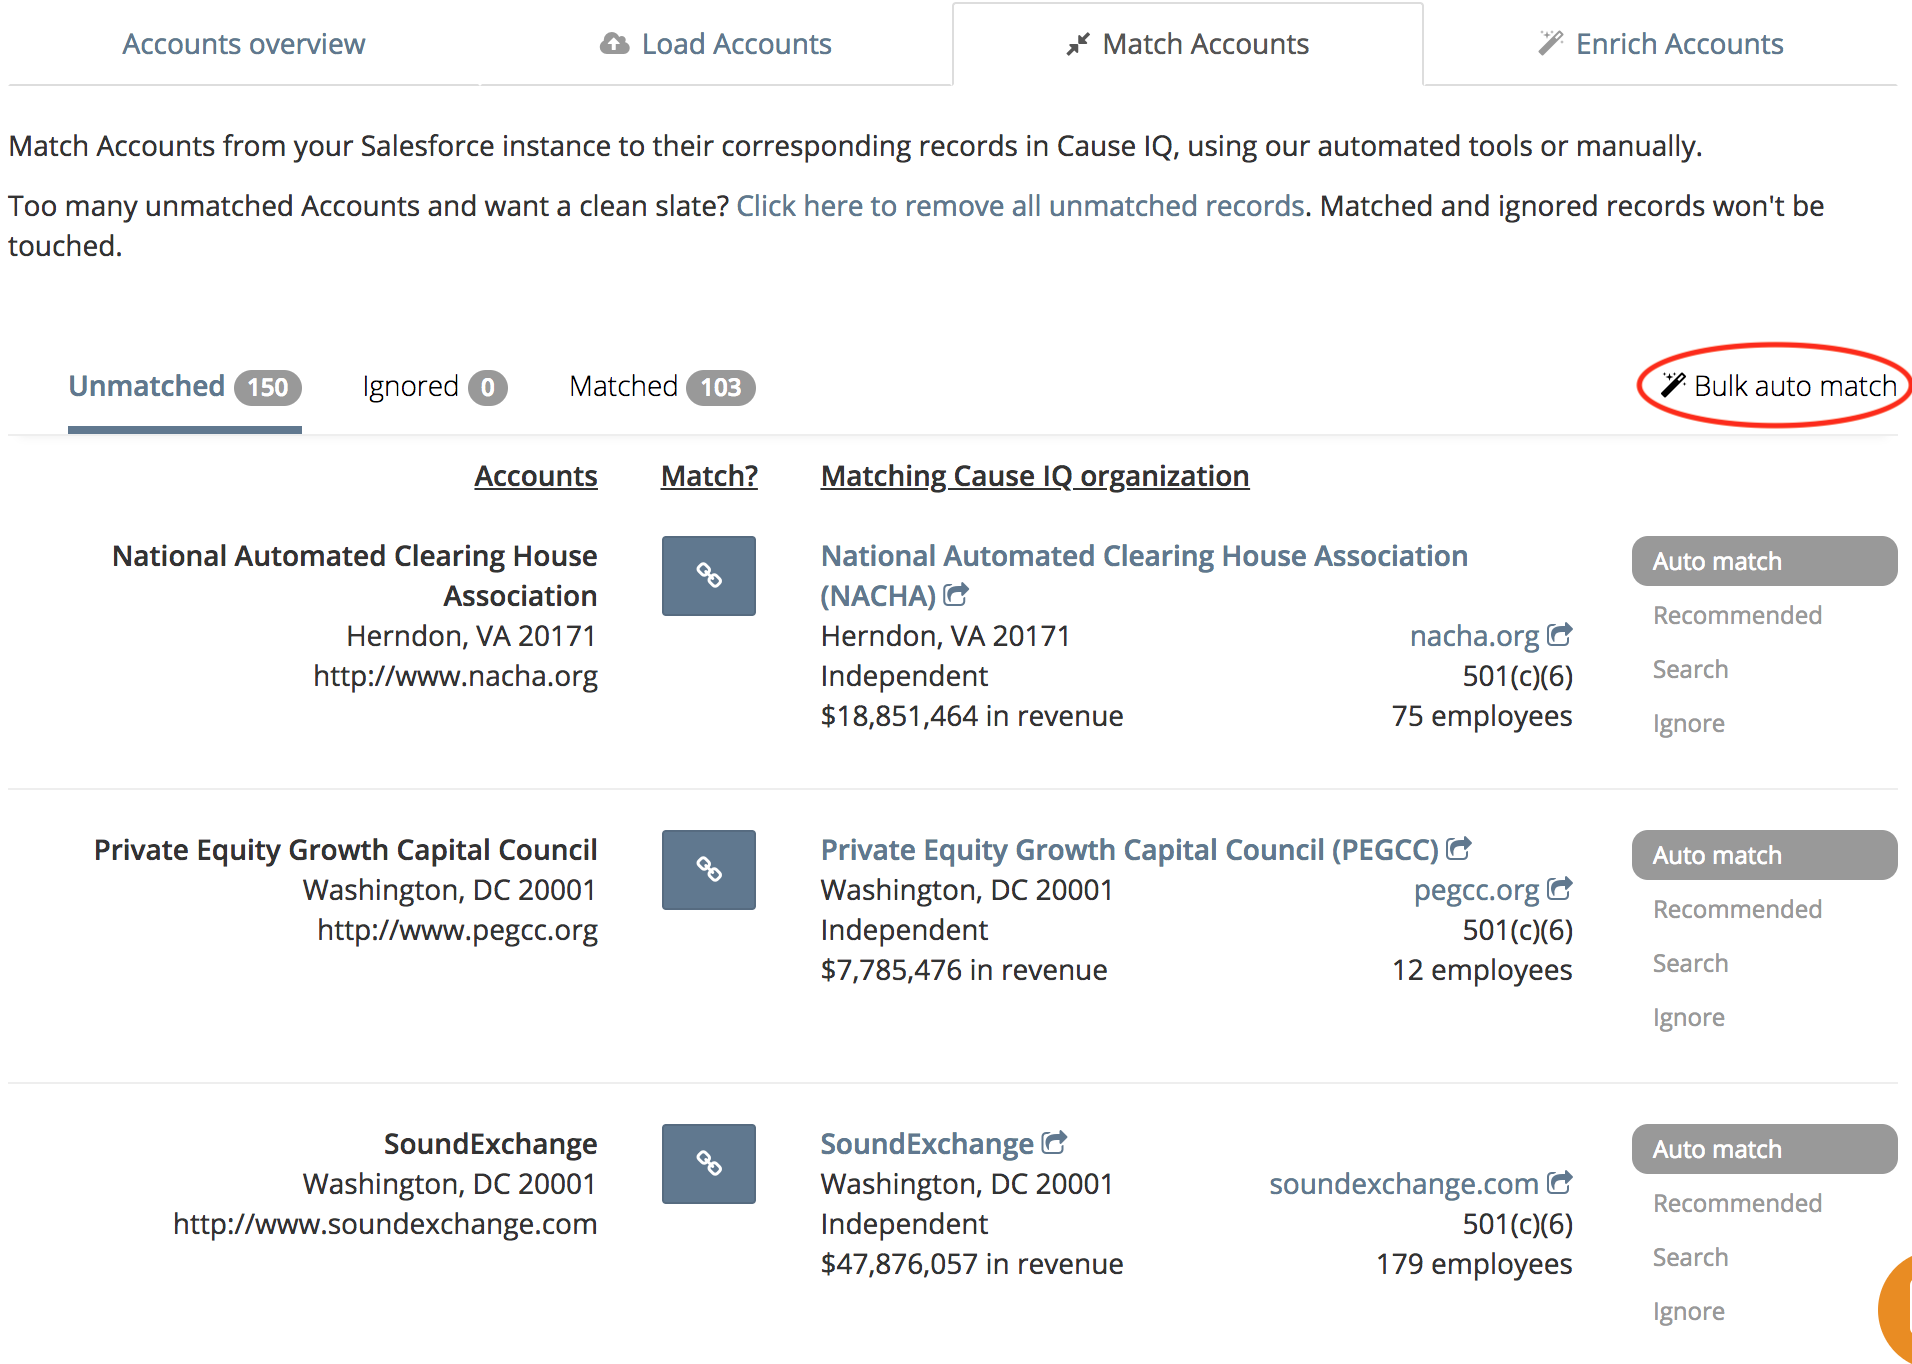 Match your Salesforce records to the corresponding organizations in Cause IQ